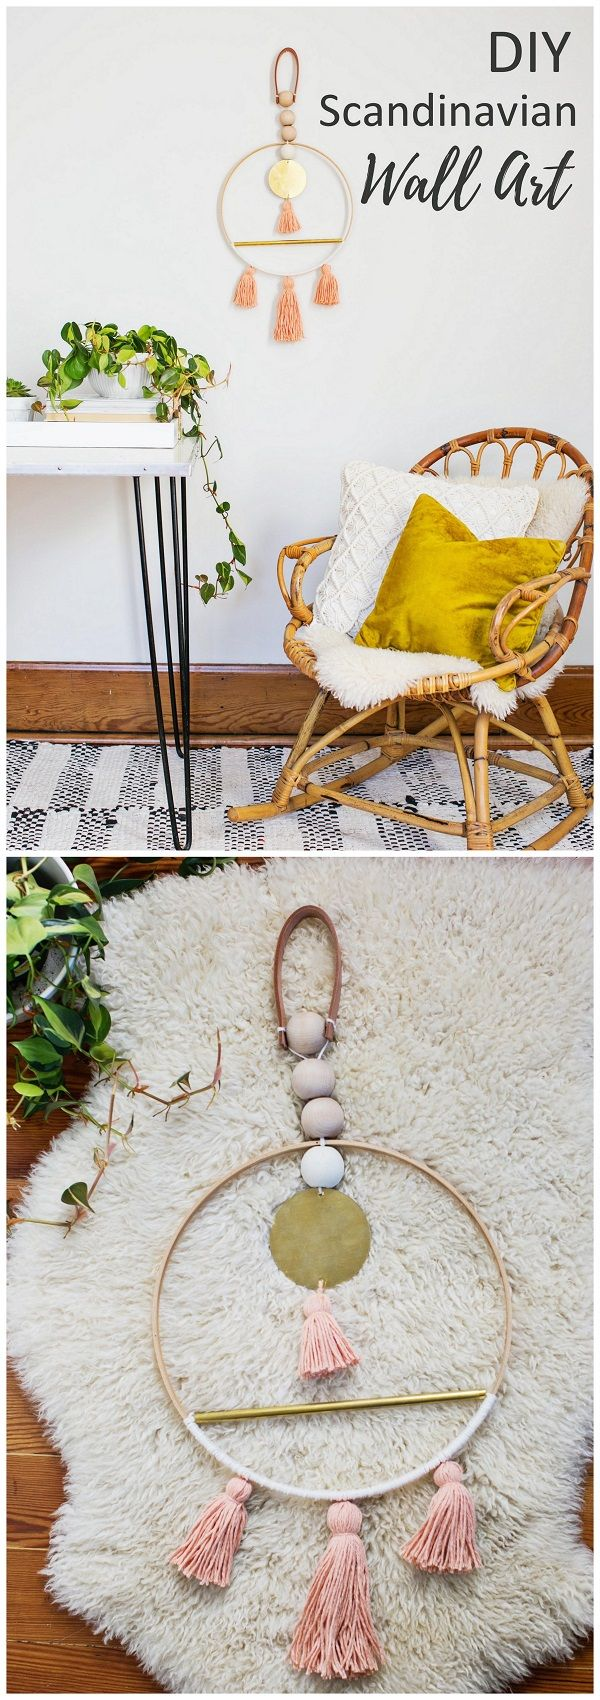 15 Most Gorgeous Scandinavian DIY Home Decor Projects | Crafts ...